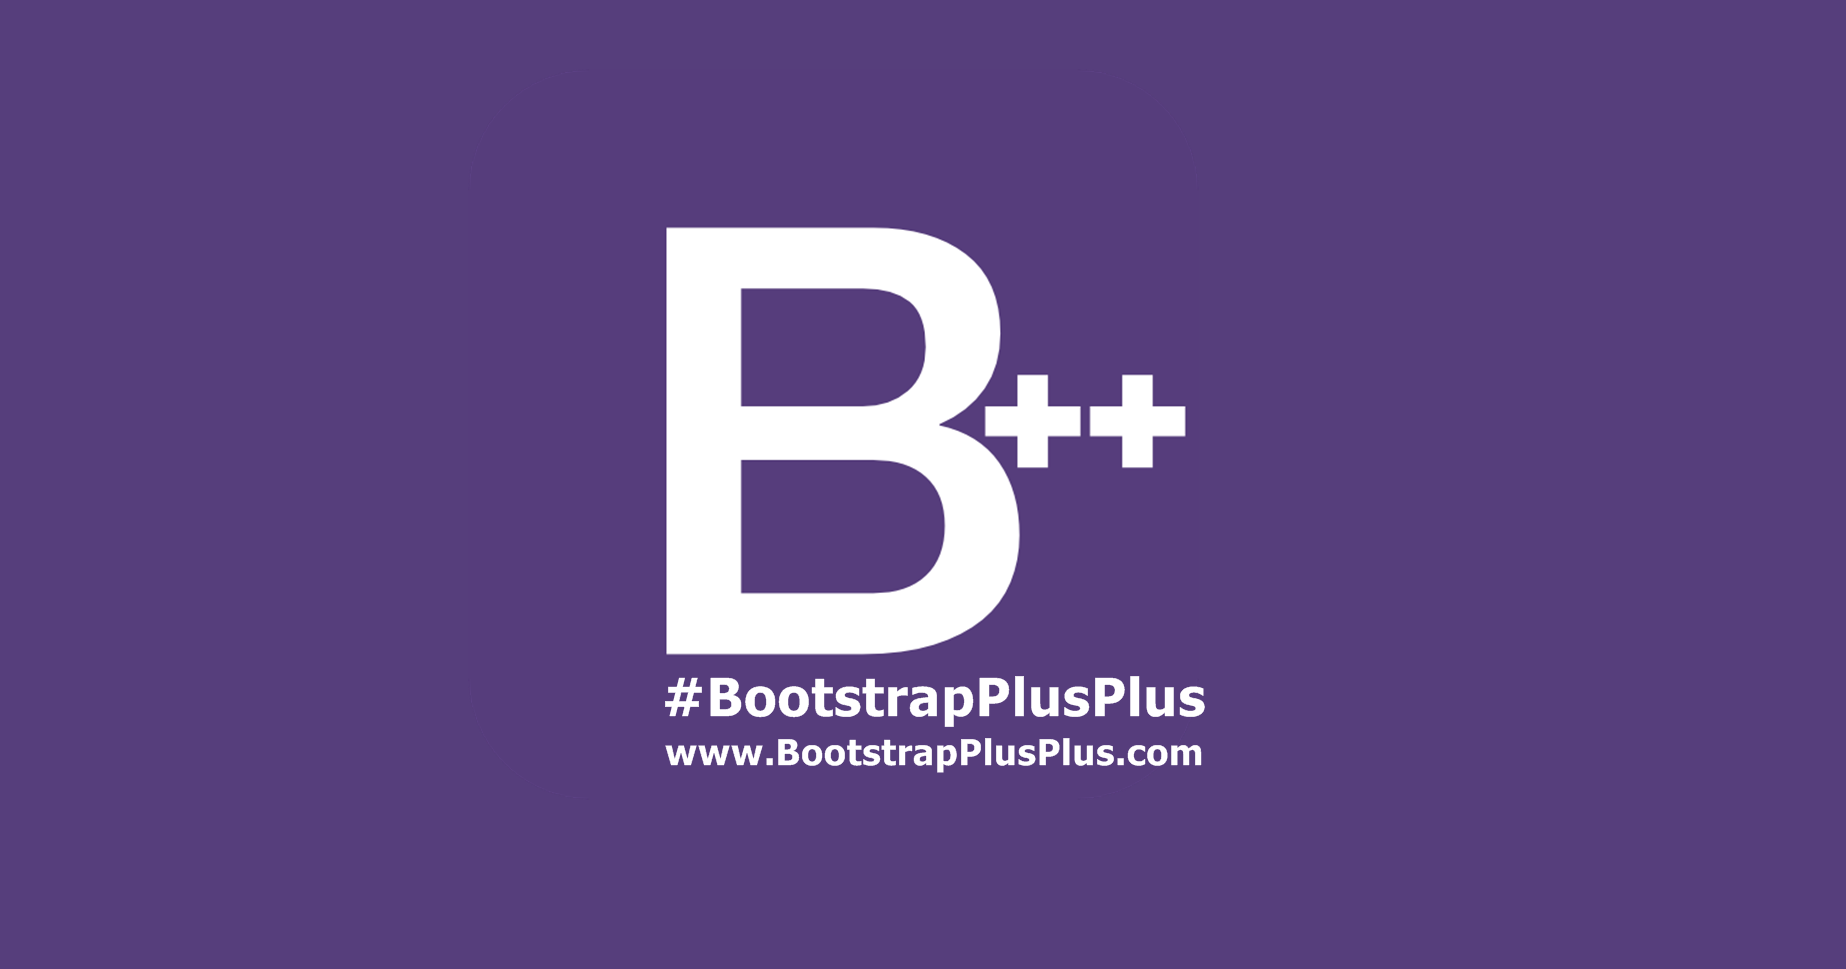 Everything You Need to Know About Bootstrap++